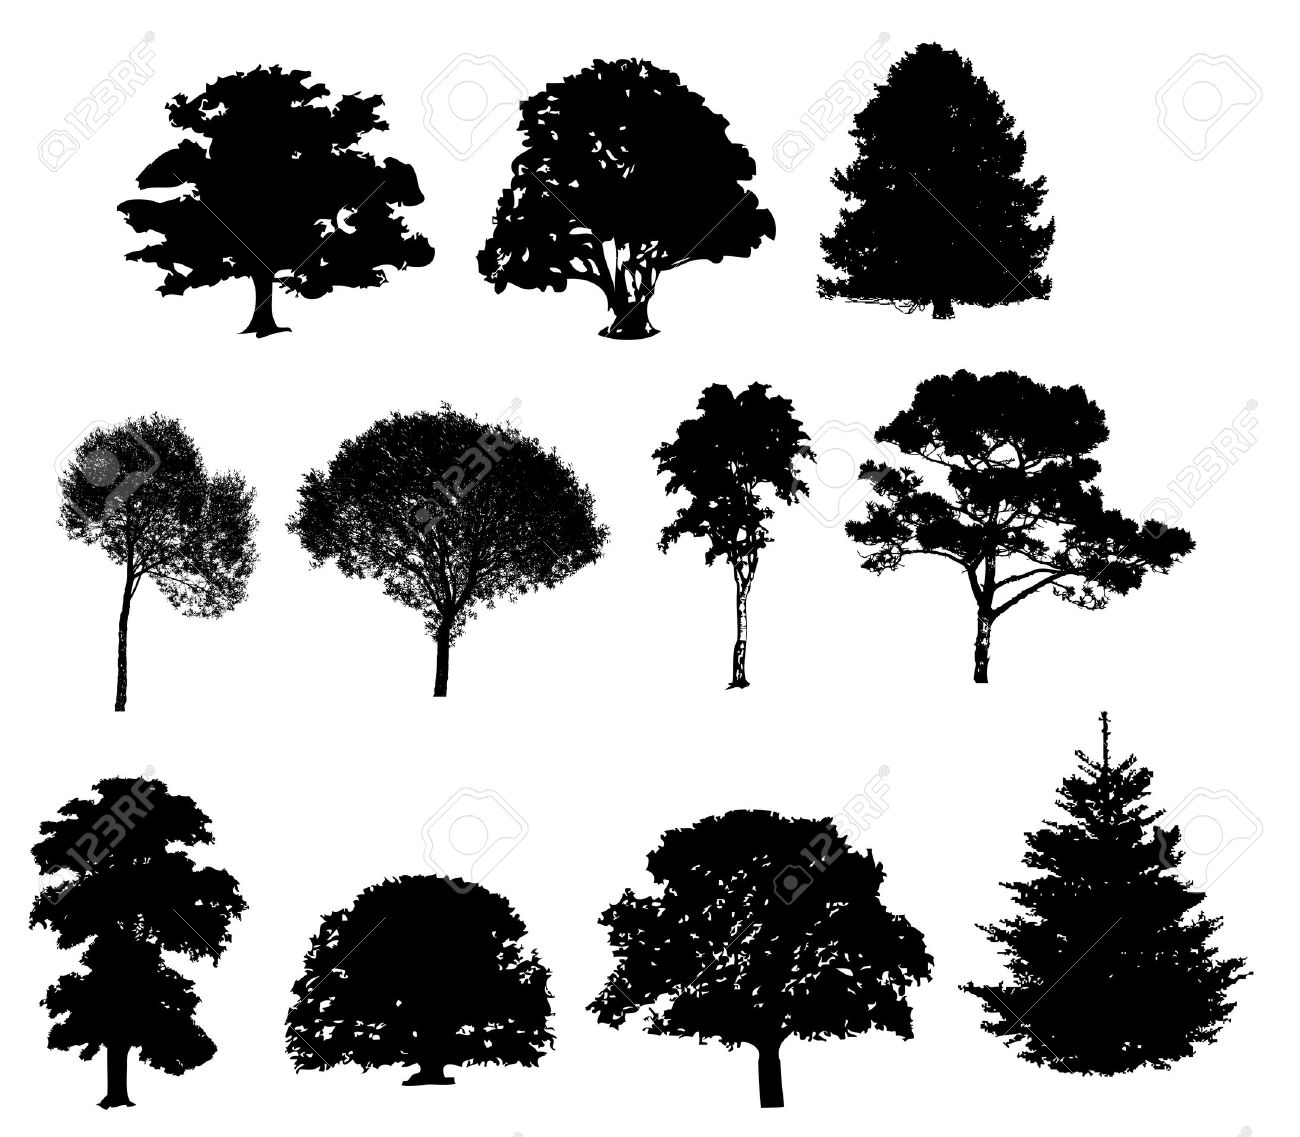 Vector Illustration Of Tree Silhouettes Royalty Free Cliparts ...